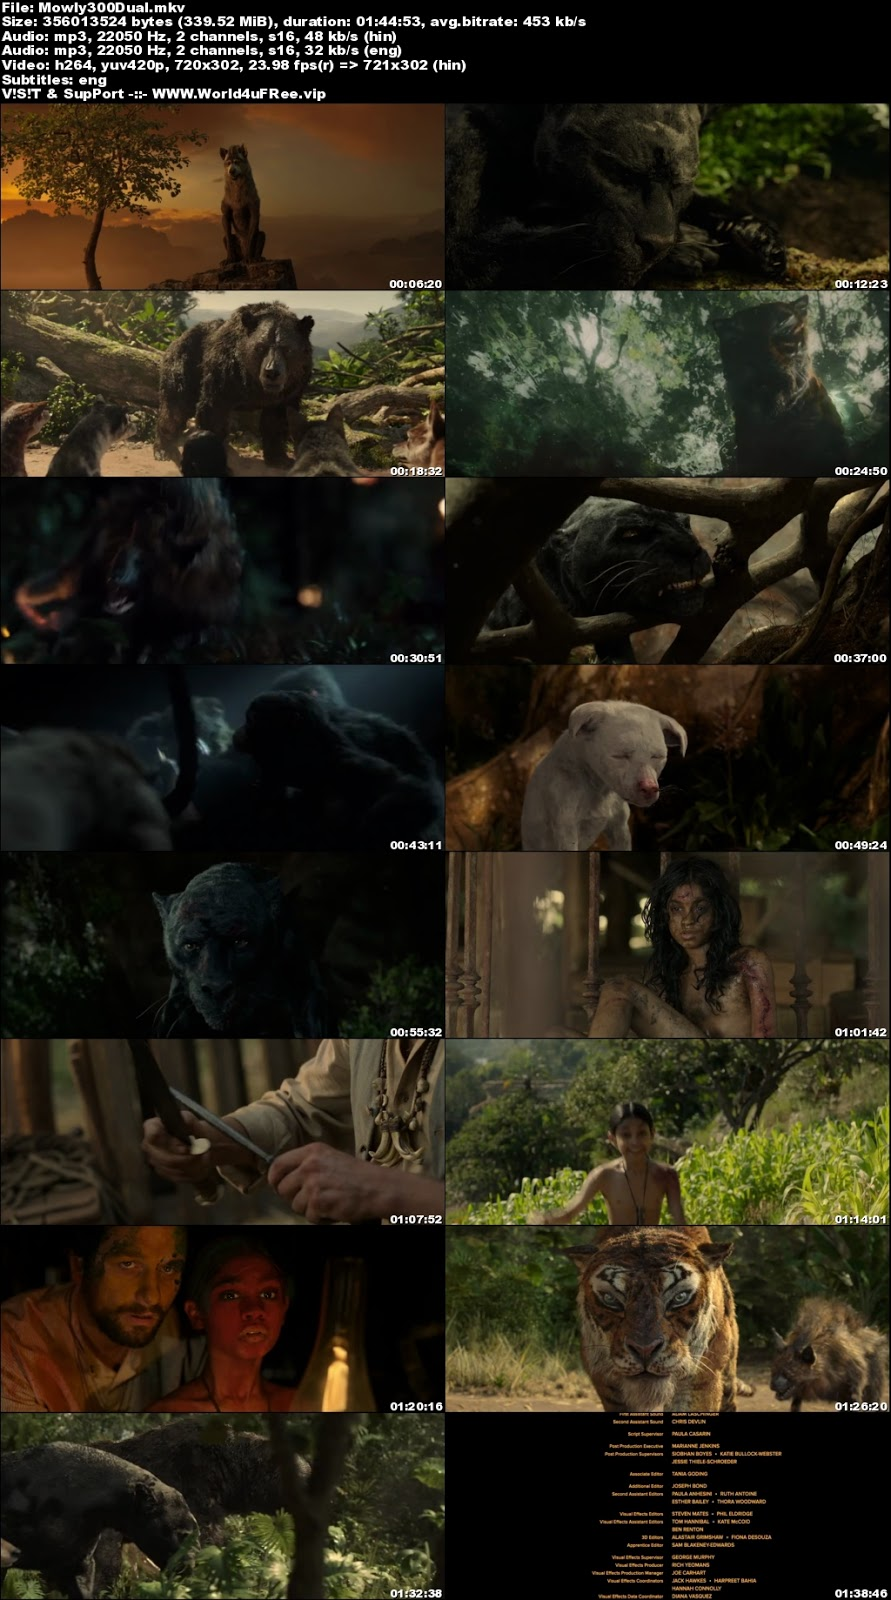 Mowgli Legend of the Jungle 2018 Dual Audio HDRip 480p 300Mb x264 world4ufree.vip, hollywood movie Mowgli Legend of the Jungle 2018 hindi dubbed dual audio hindi english languages original audio 720p BRRip hdrip free download 700mb movies download or watch online at world4ufree.vip